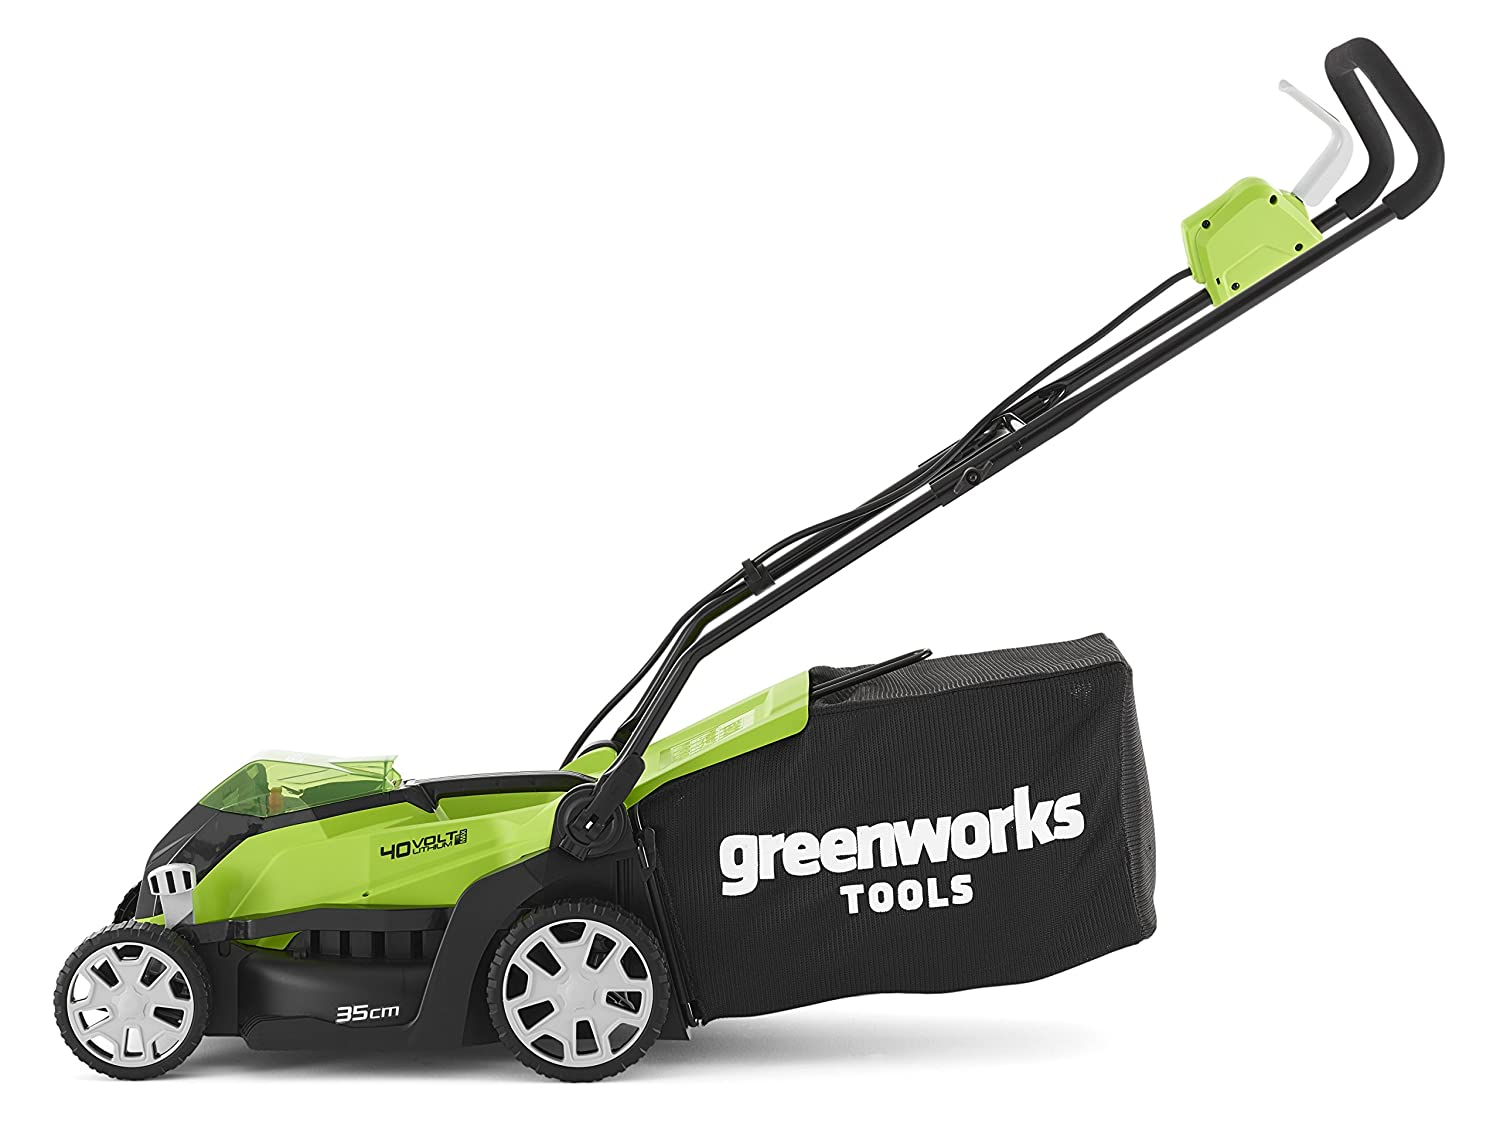 2501907UC Greenworks 40V Cordless Lawn Mower 35cm with 2x 2Ah batteries and chager 14